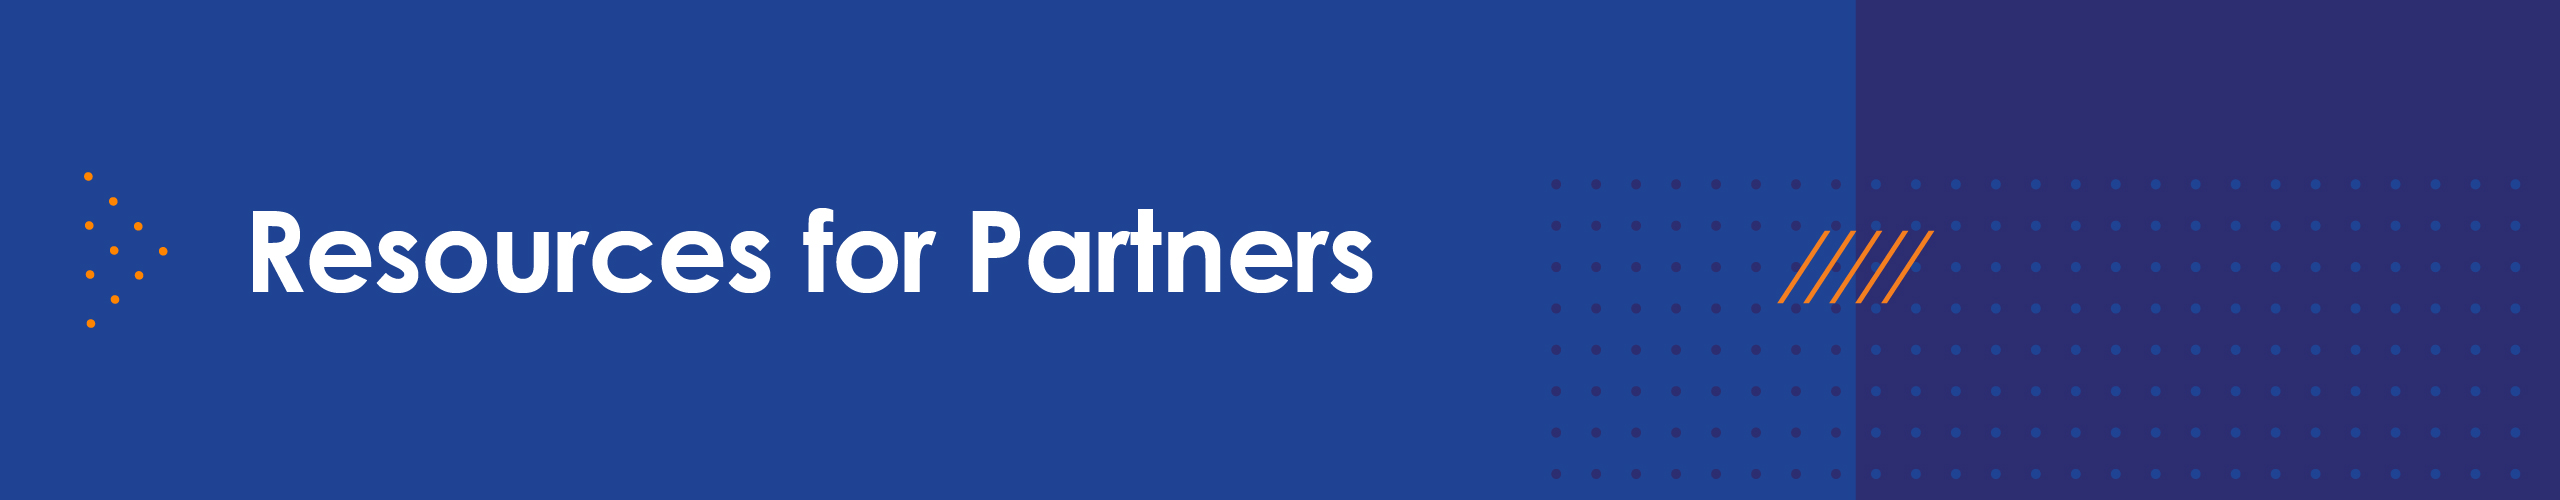 Resource for partners